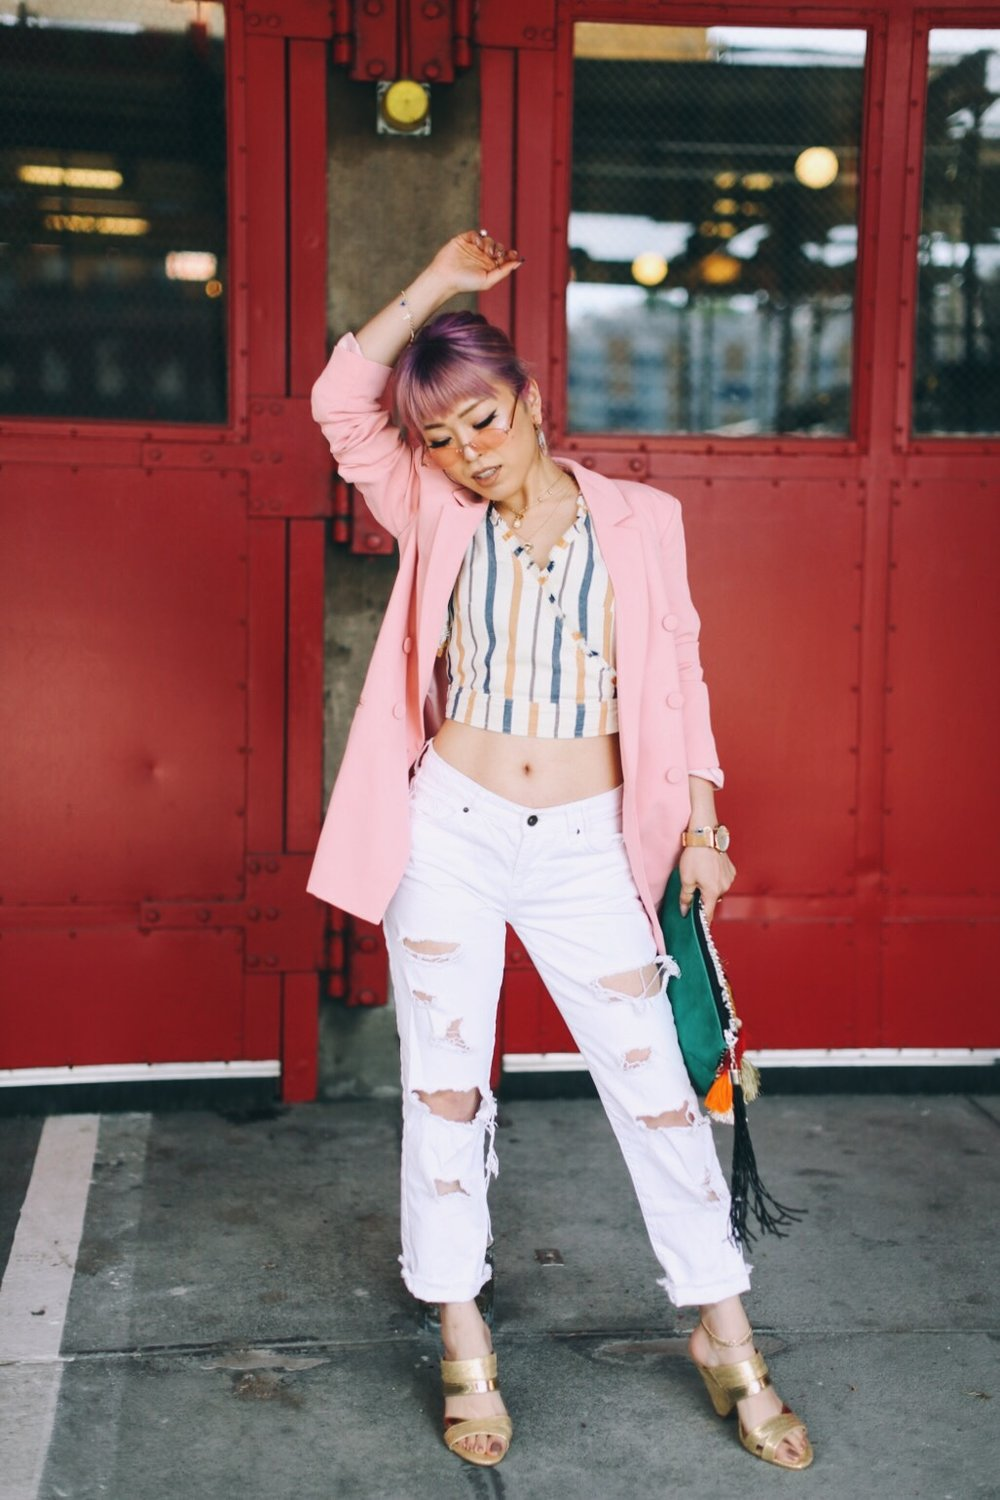 River Island Pink double breasted style blazer-River Island Yellow stripe denim wrap frayed trim crop top-Zara White distressed boyfriend jeans-River Island Black embellished jacquard pouch clutch bag-Clear plastic glitter hoop earrings-Gold open toe cone heel mule-ZeroUV Retro Triangle Cat Eye Sunglasses-Aikas Love Closet-Seattle Fashion Blogger-Japanese-Pink Hair-petite fashion-street snap 6